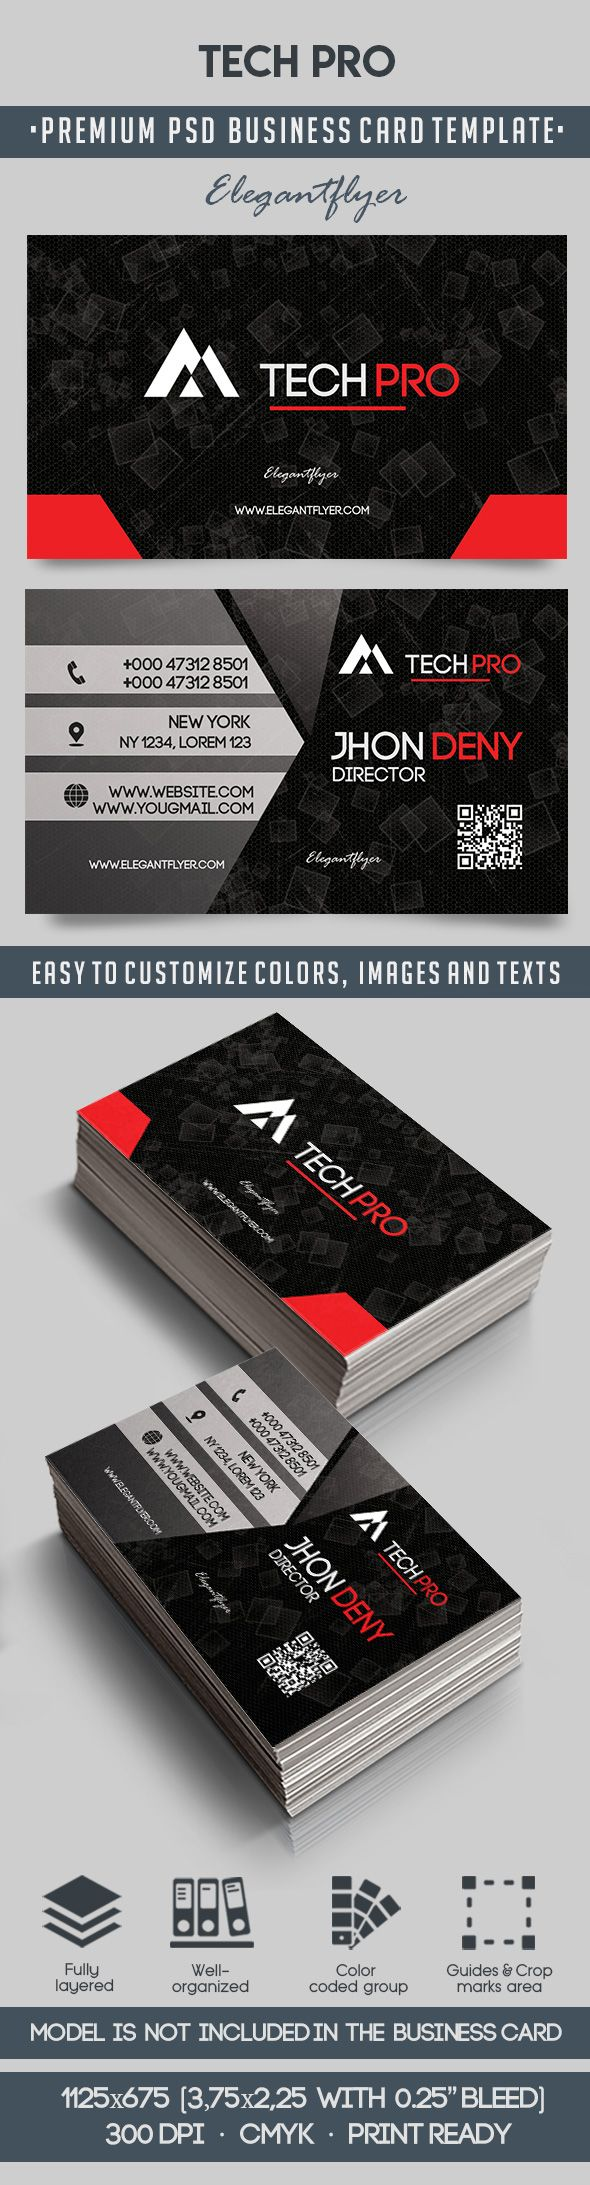 Tech pro premium business card templates psd by elegantflyer tech pro premium business card templates psd flashek